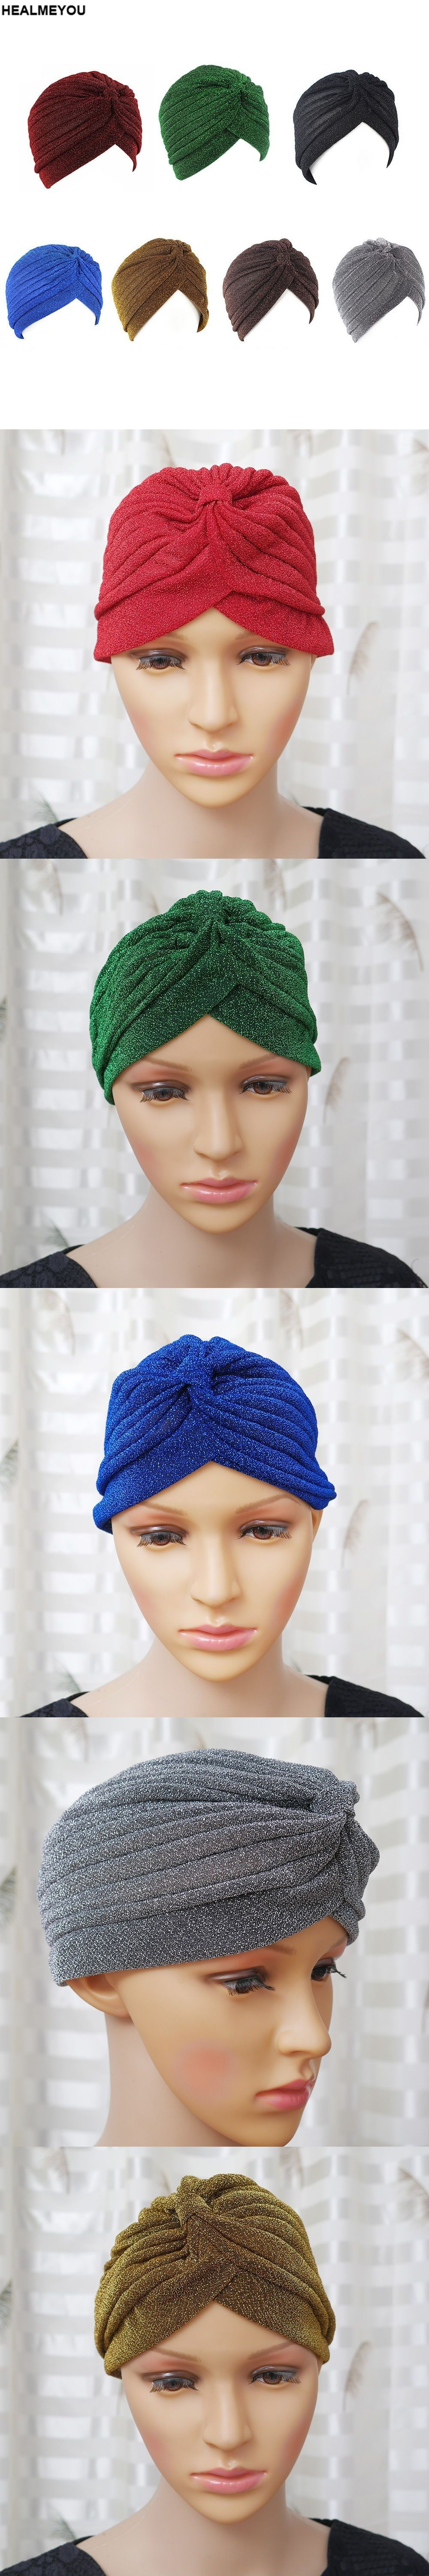 b655d9bd70c Men Women Stretchable Soft Indian Style Turban Hat Head Wrap Band Cap 7  Colors